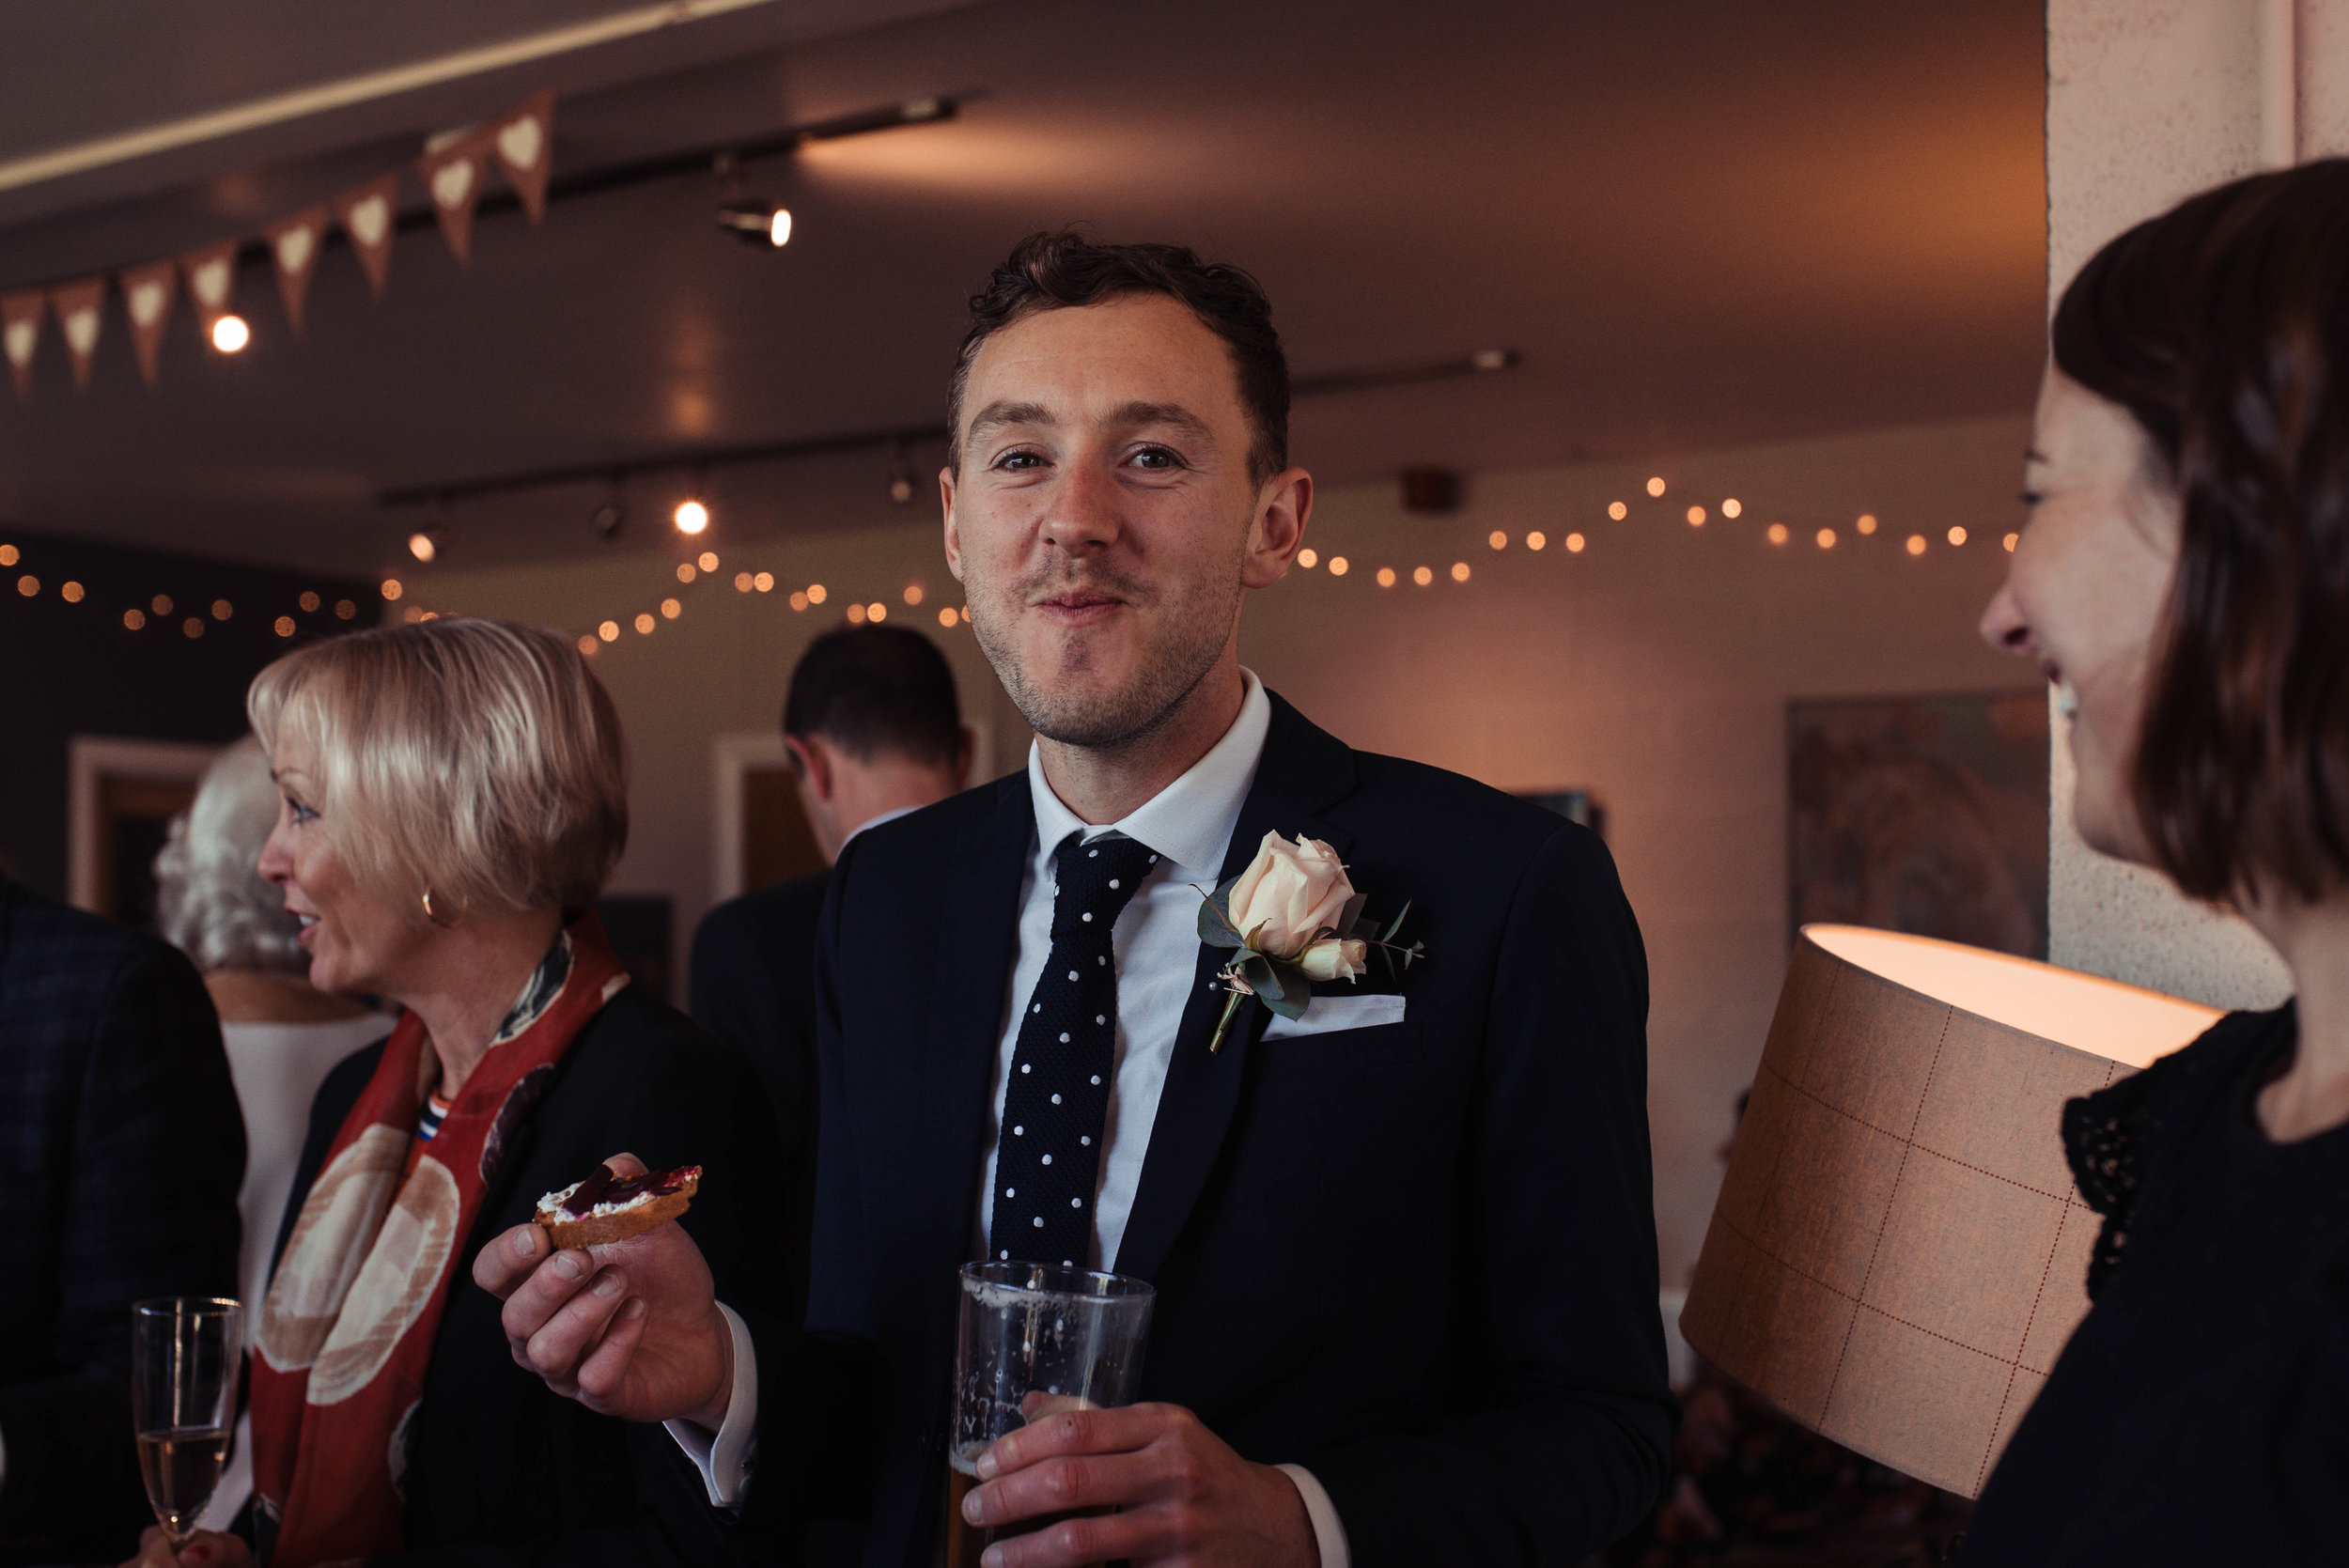 The camera catches the best man just as he's about to eat a canapes